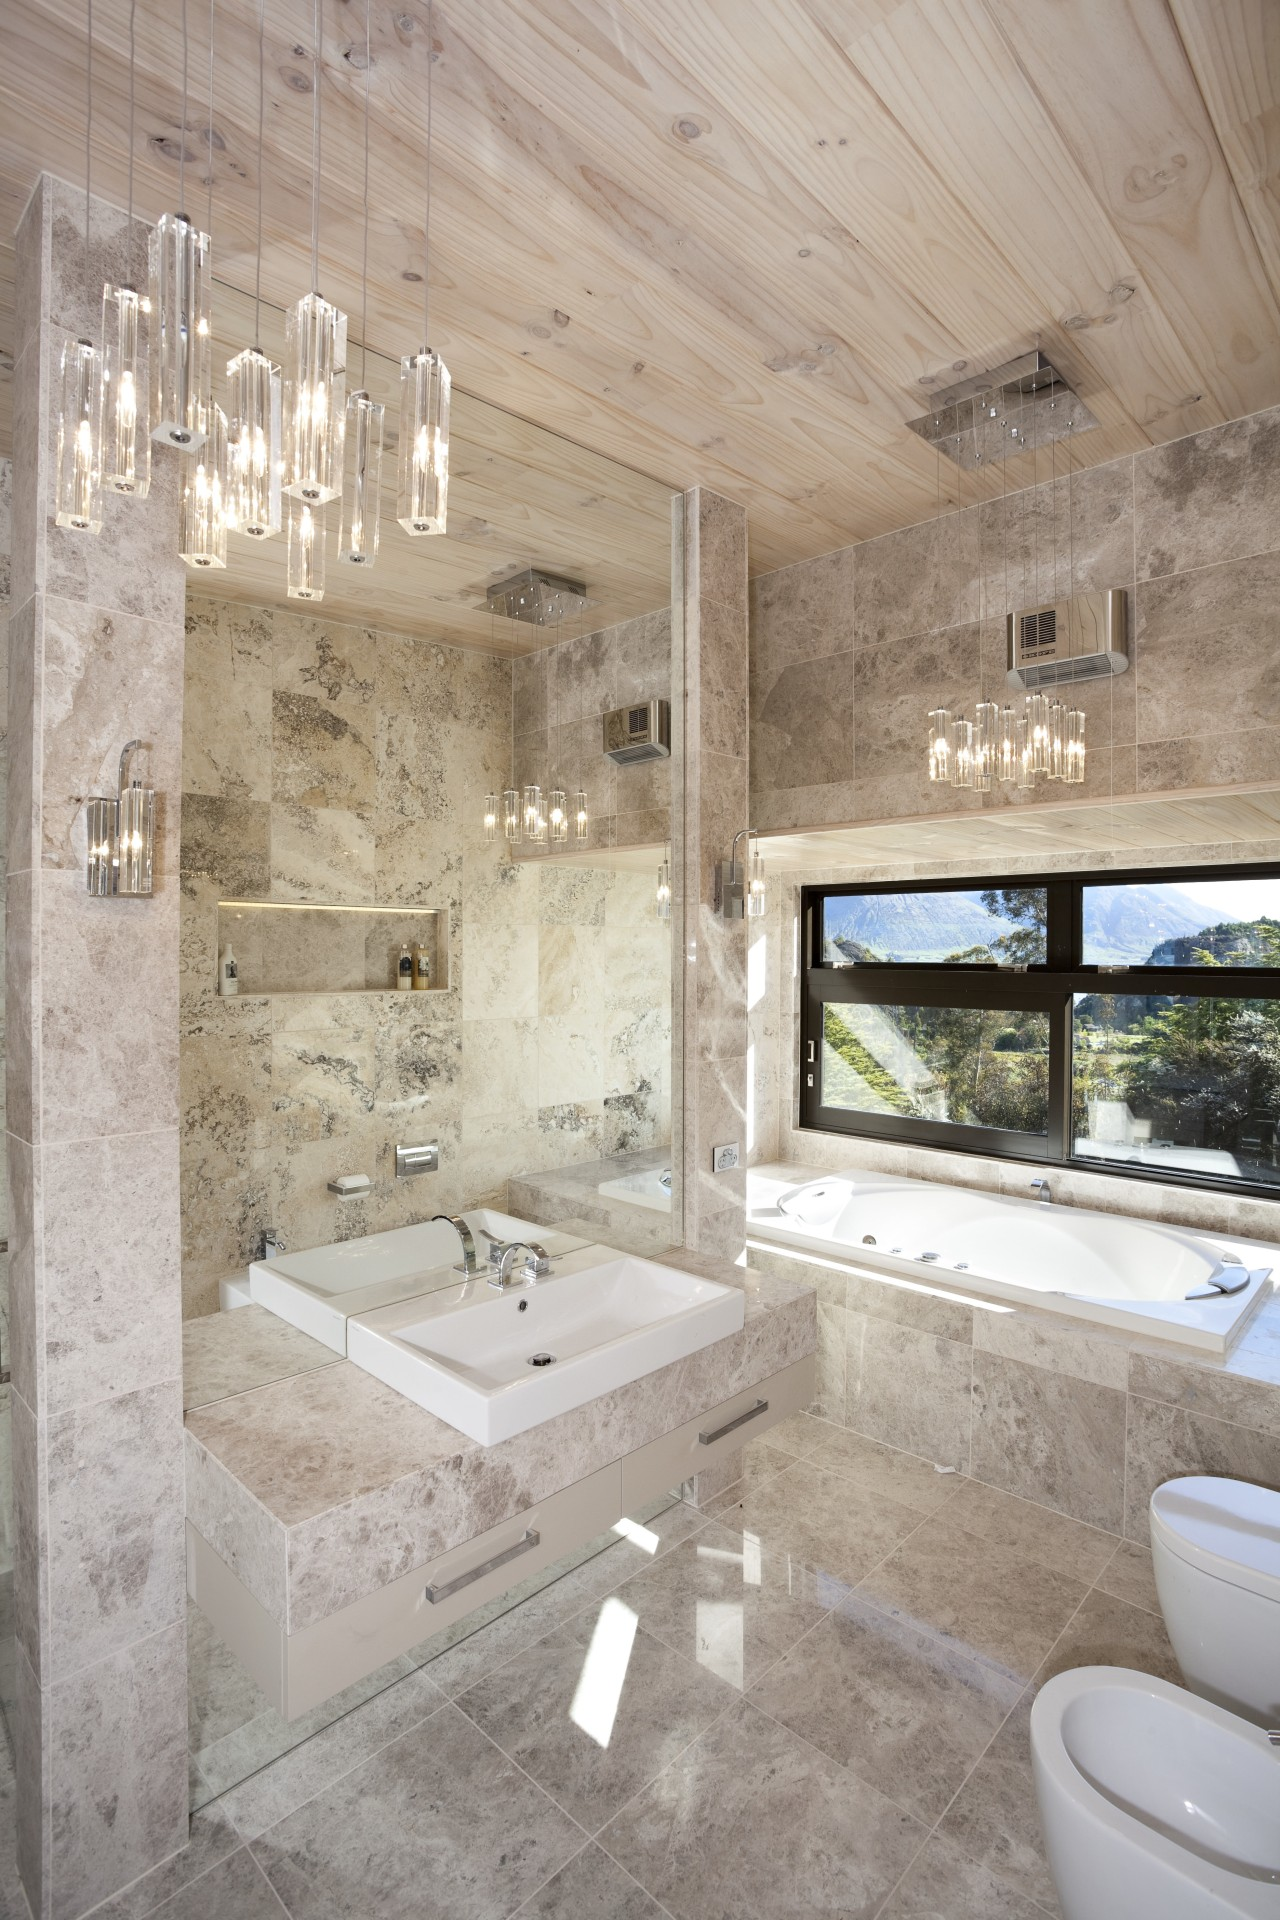 This bathroom was designed by Jalna Eve Design architecture, bathroom, estate, floor, home, interior design, room, tile, gray